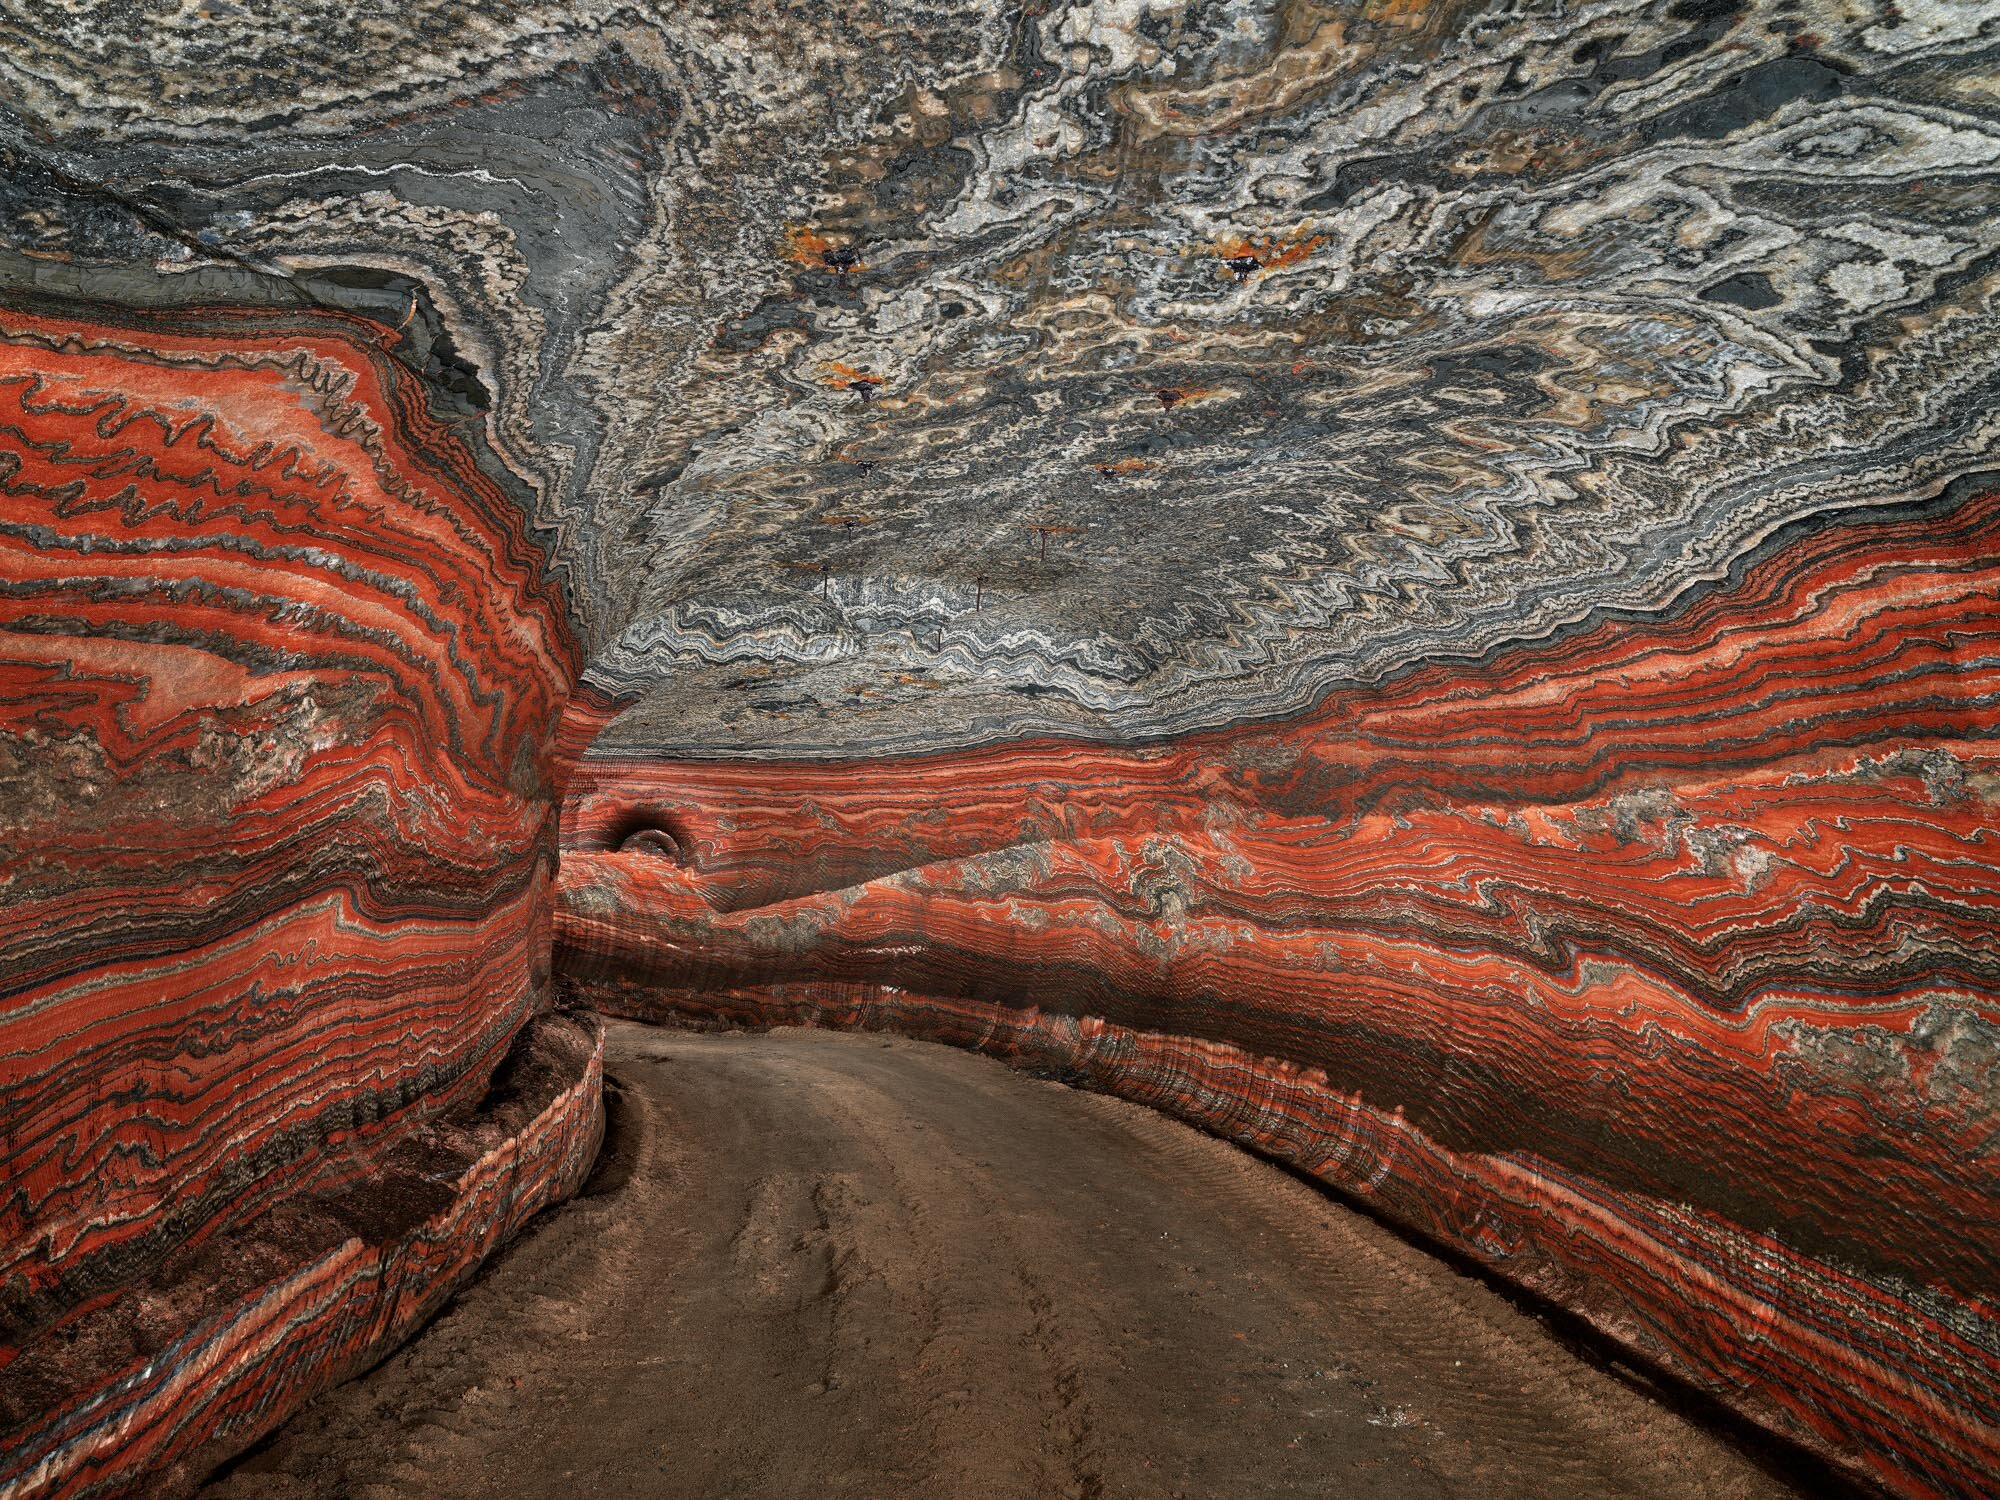 EDWARD BURTYNSKY anthropocene age of Union Dax Dasilva1